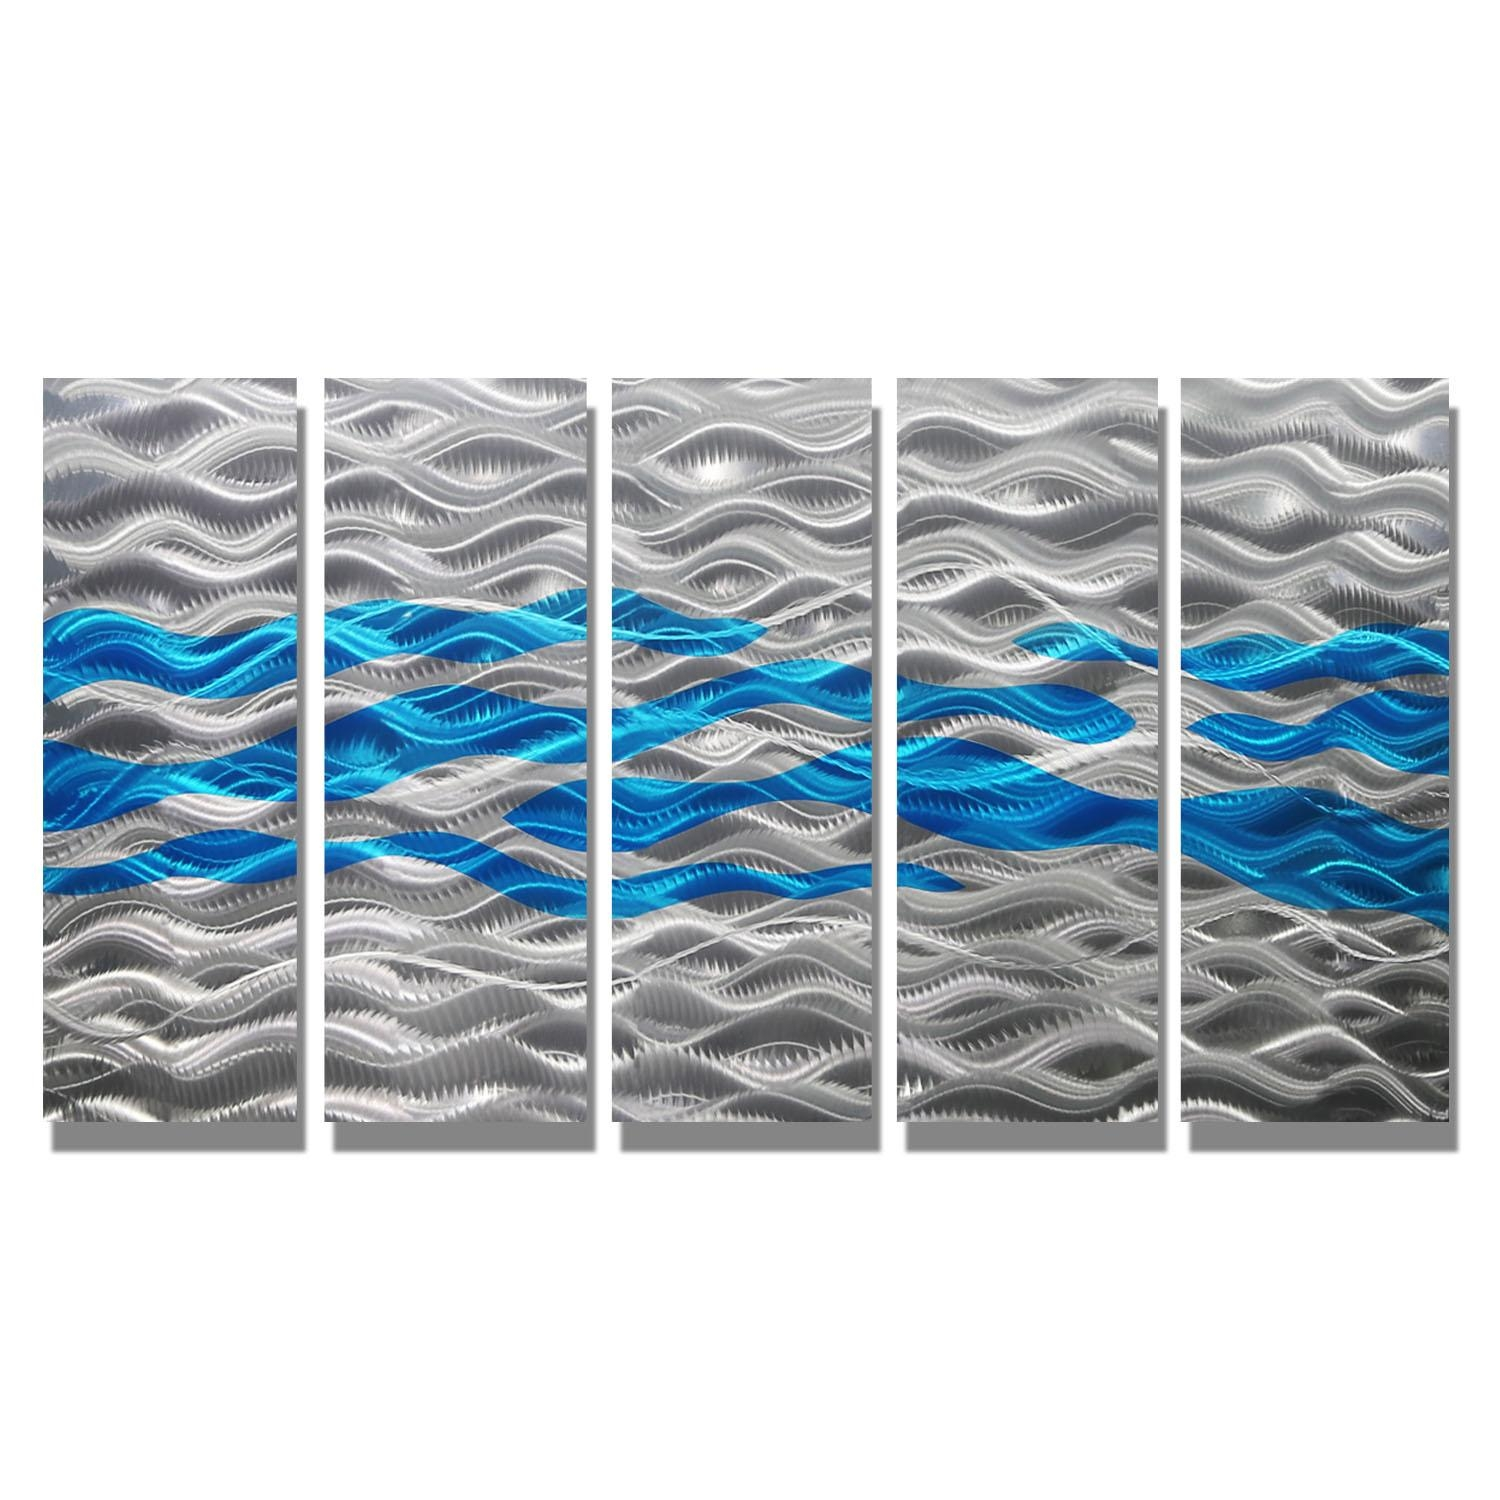 Aqua Oceana – Silver And Aqua Metal Wall Art – 5 Panel Wall Décor Pertaining To Blue And Silver Wall Art (Image 4 of 20)